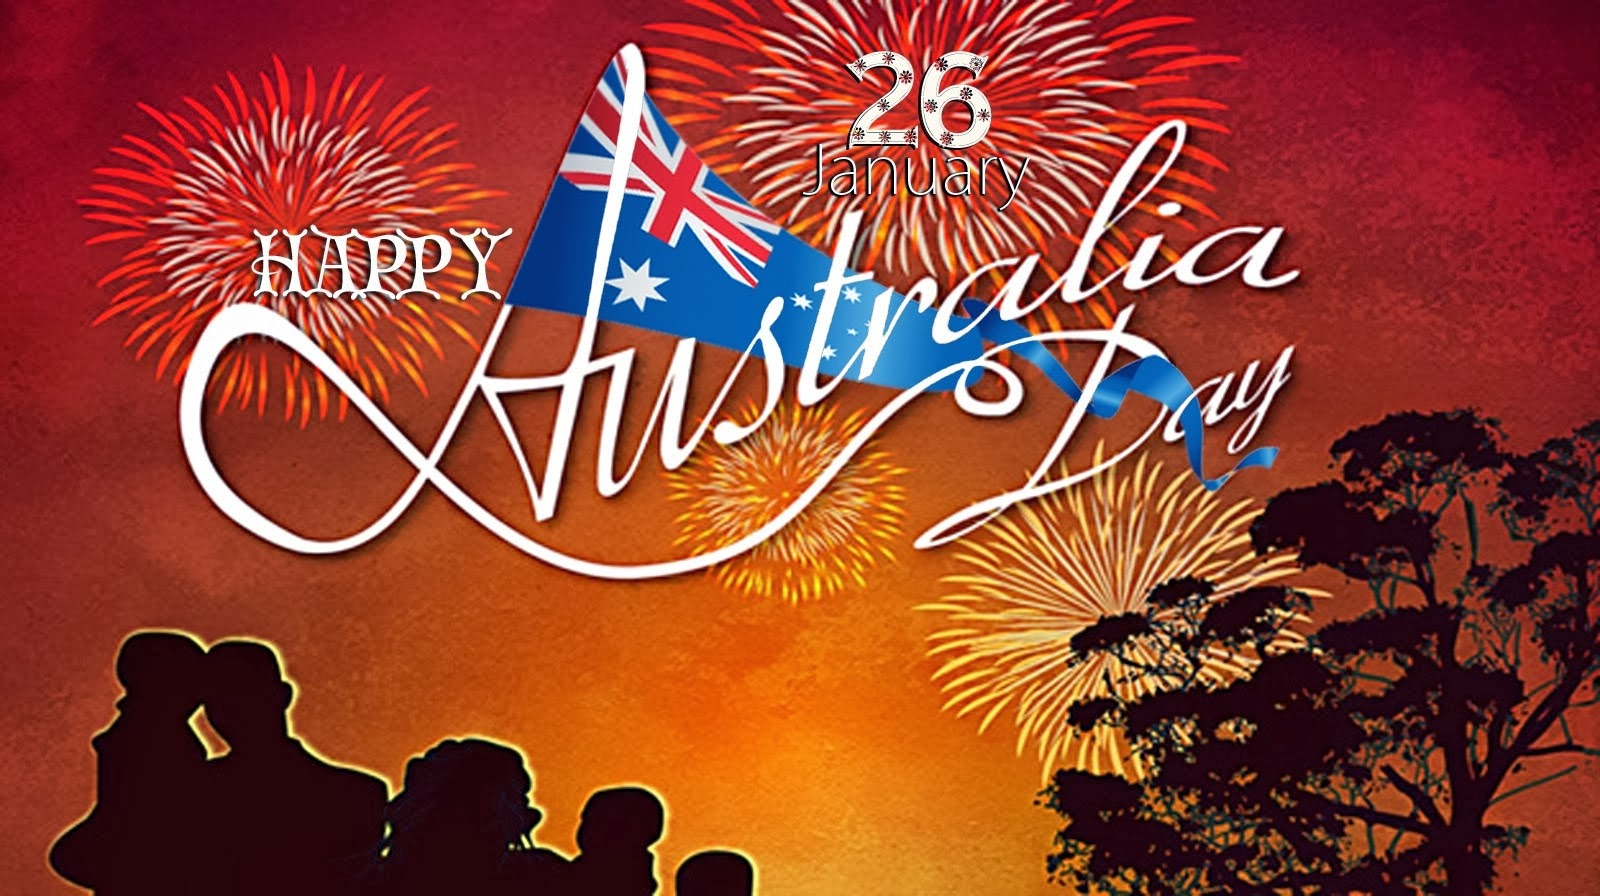 Happy australia day wishes message with greeting cards wallpapers happy australia day wishes message with greeting cards wallpapers m4hsunfo